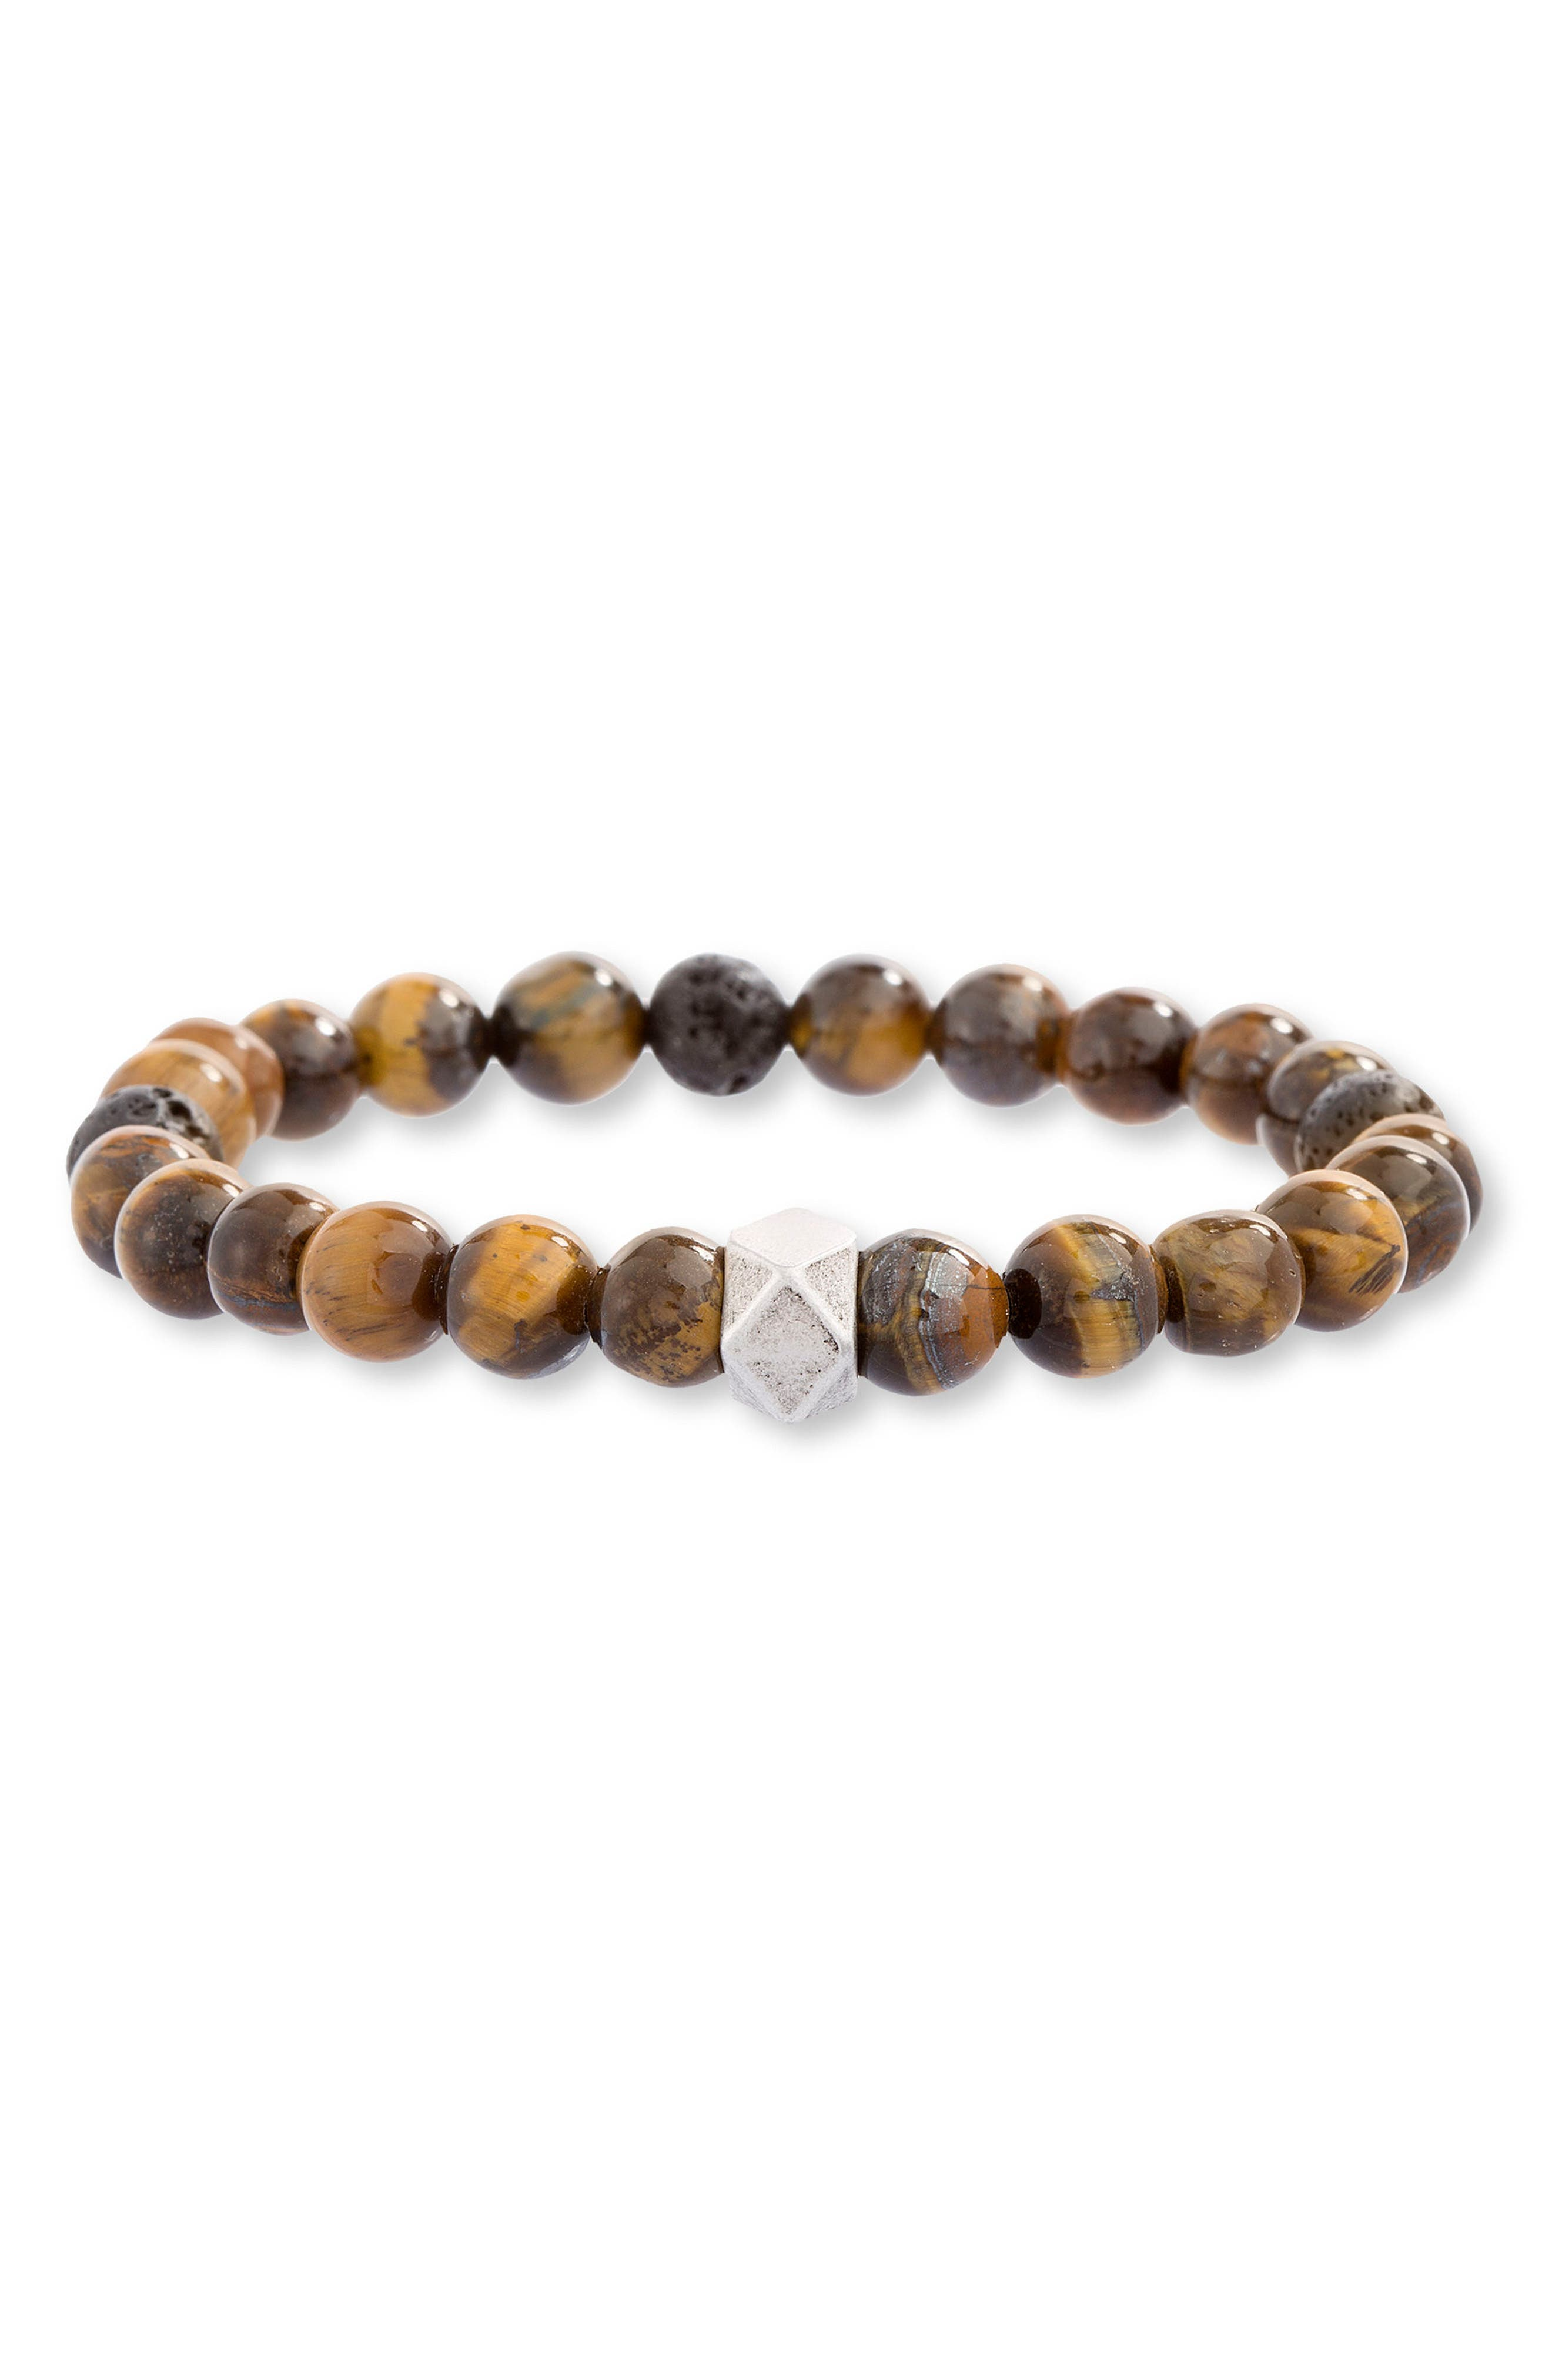 Tiger's Eye Bead Bracelet,                             Alternate thumbnail 2, color,                             BROWN